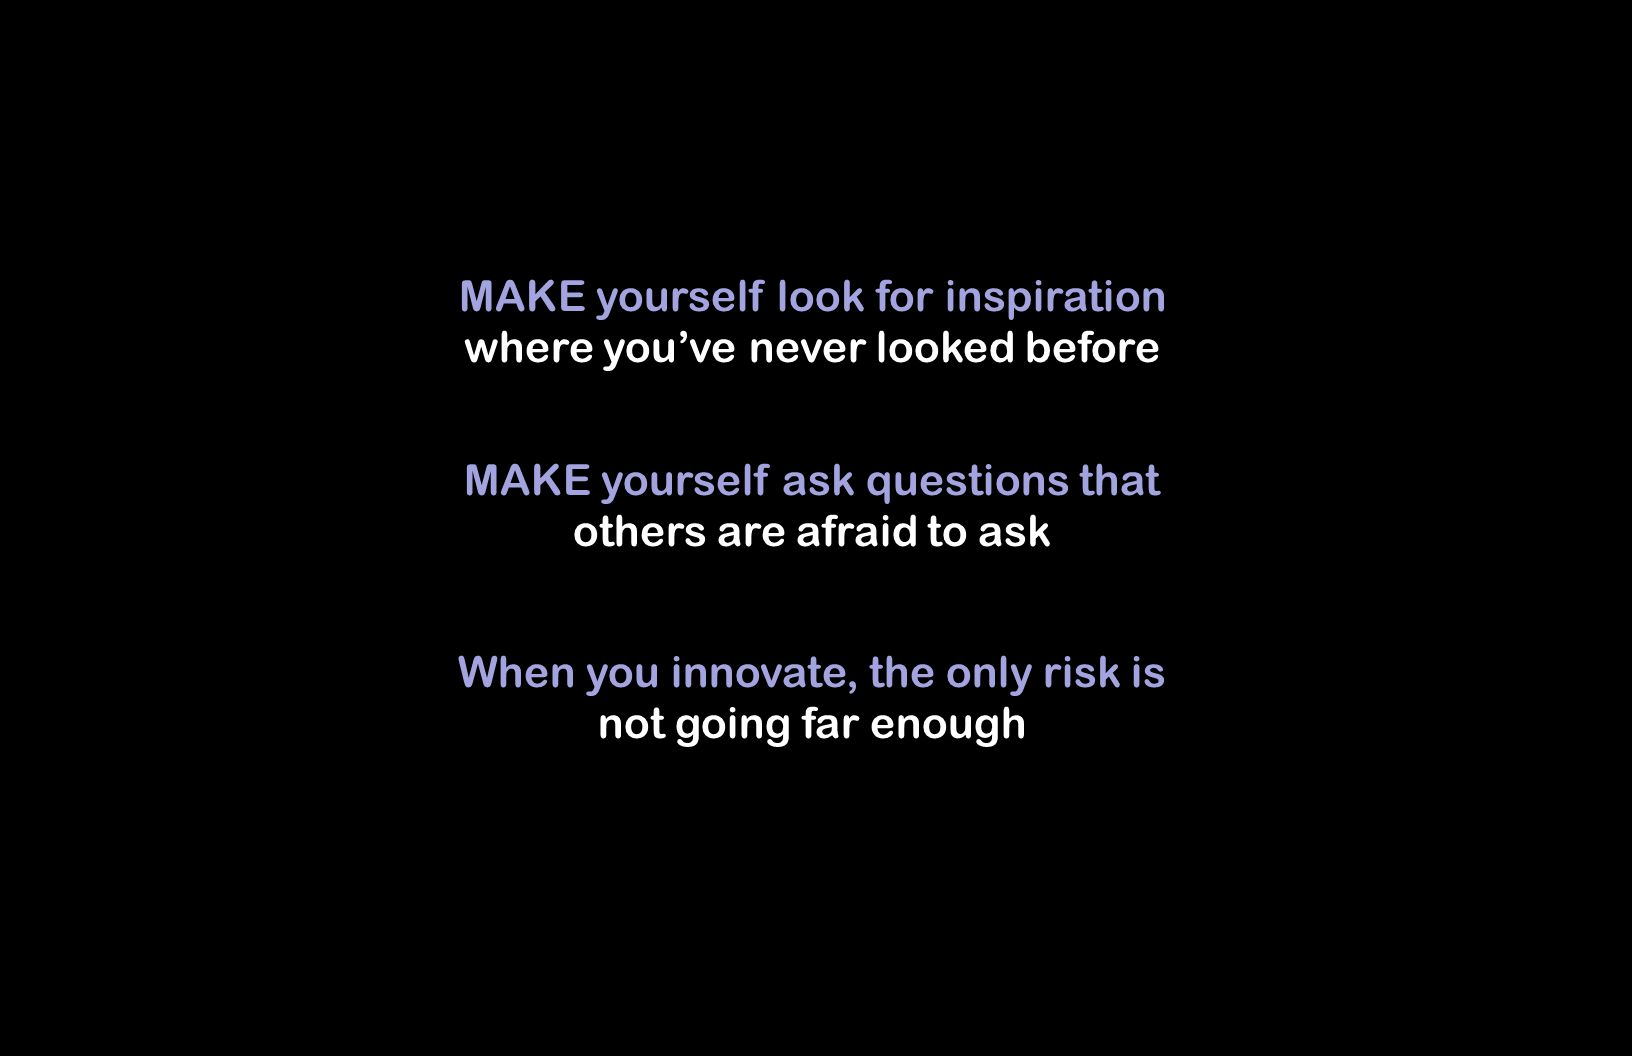 MAKE yourself look for inspiration where youve never looked before When you innovate, the only risk is not going far enough MAKE yourself ask questions that others are afraid to ask